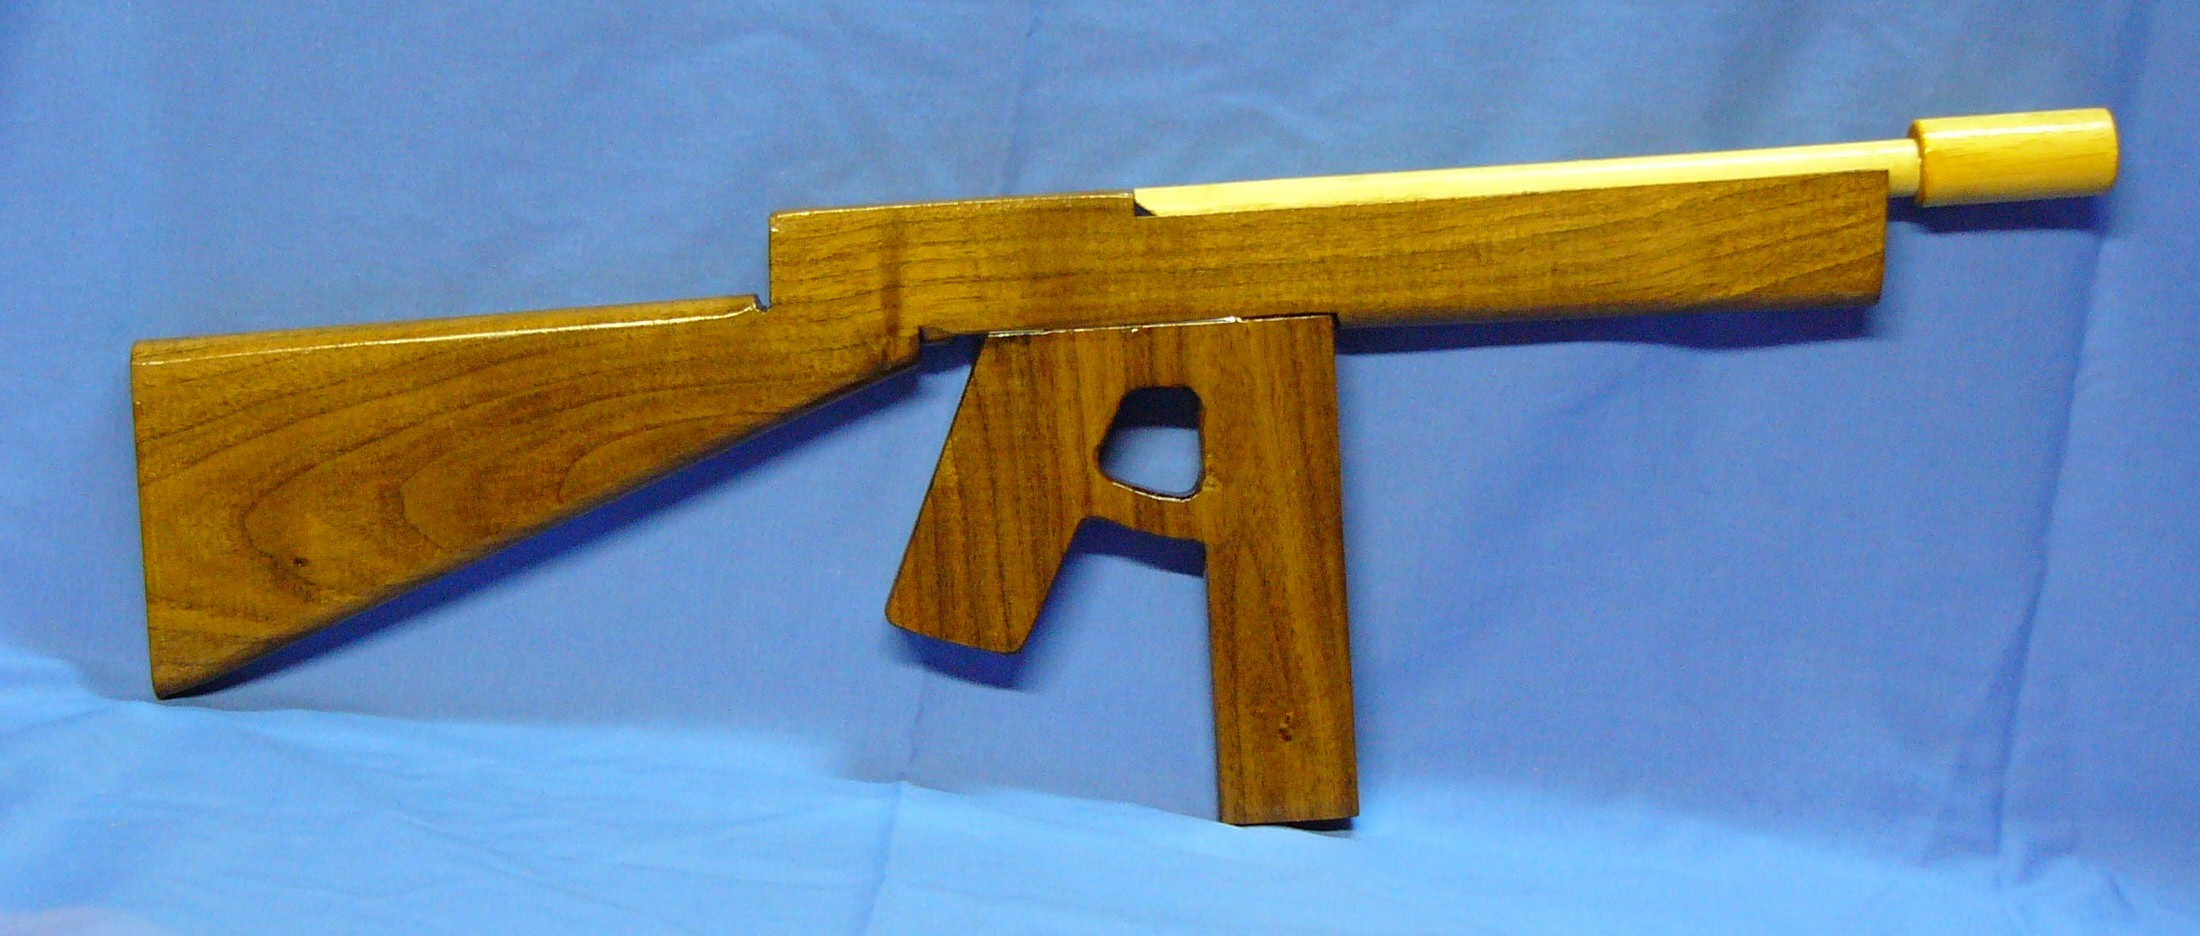 704-submachinegun.JPG